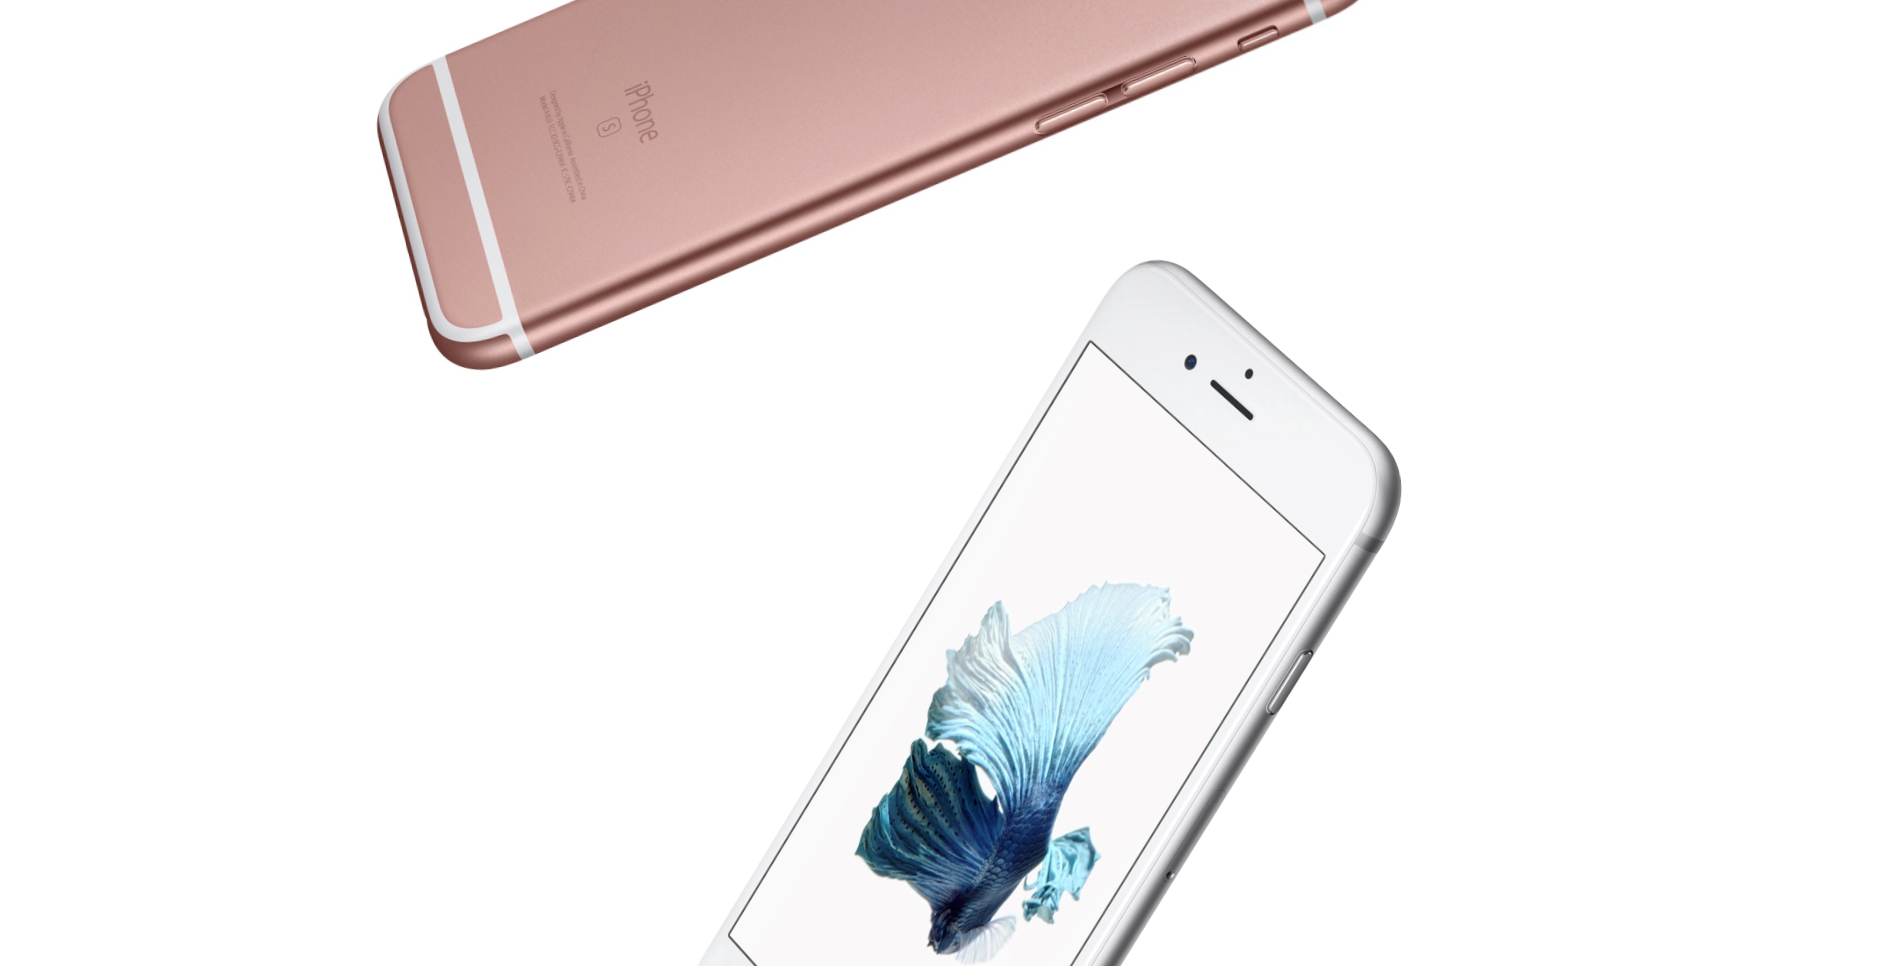 Curved OLED rumors continue to swirl around future editions of the iPhone